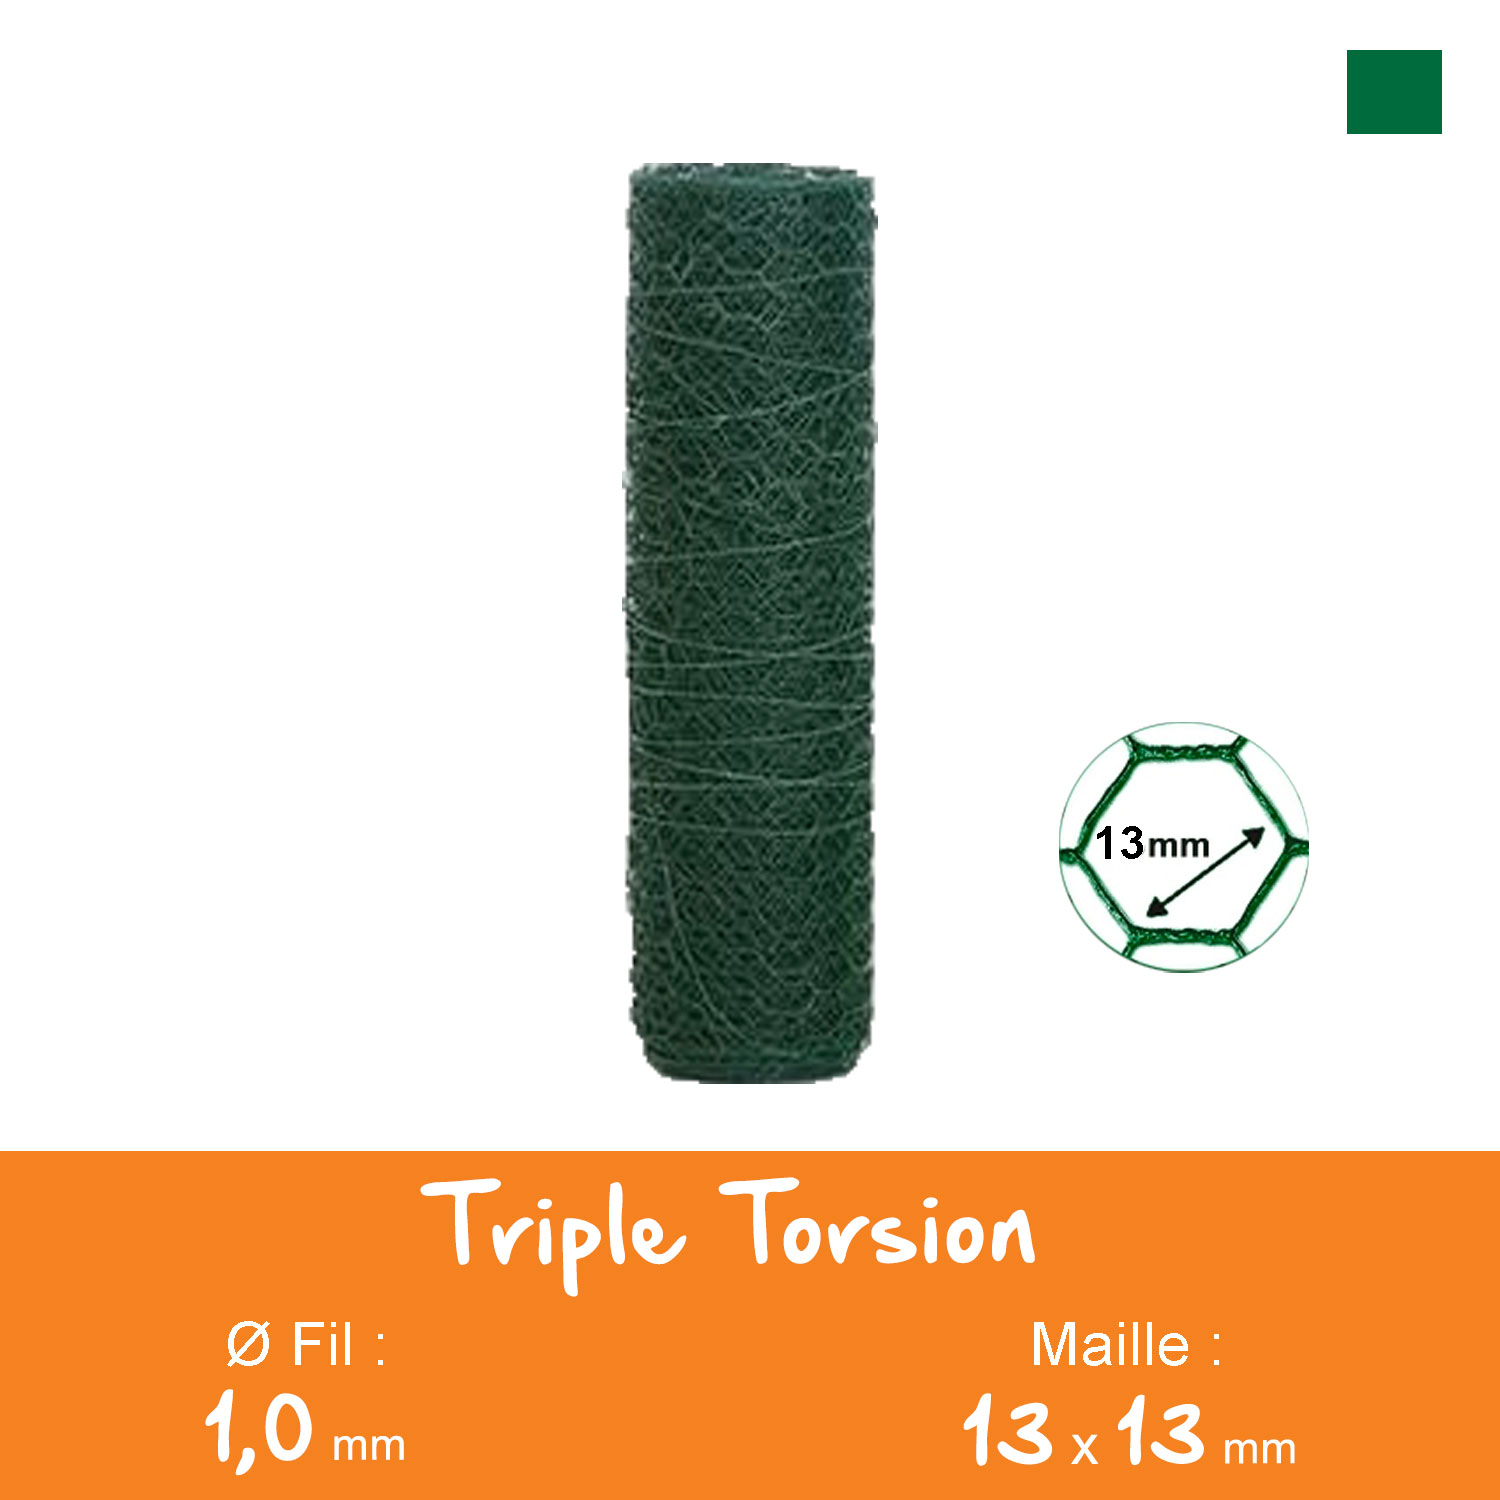 Triple Torsion Plastifié Maille 13mm Ø1,0mm Ht.0m50 Lg.10ml